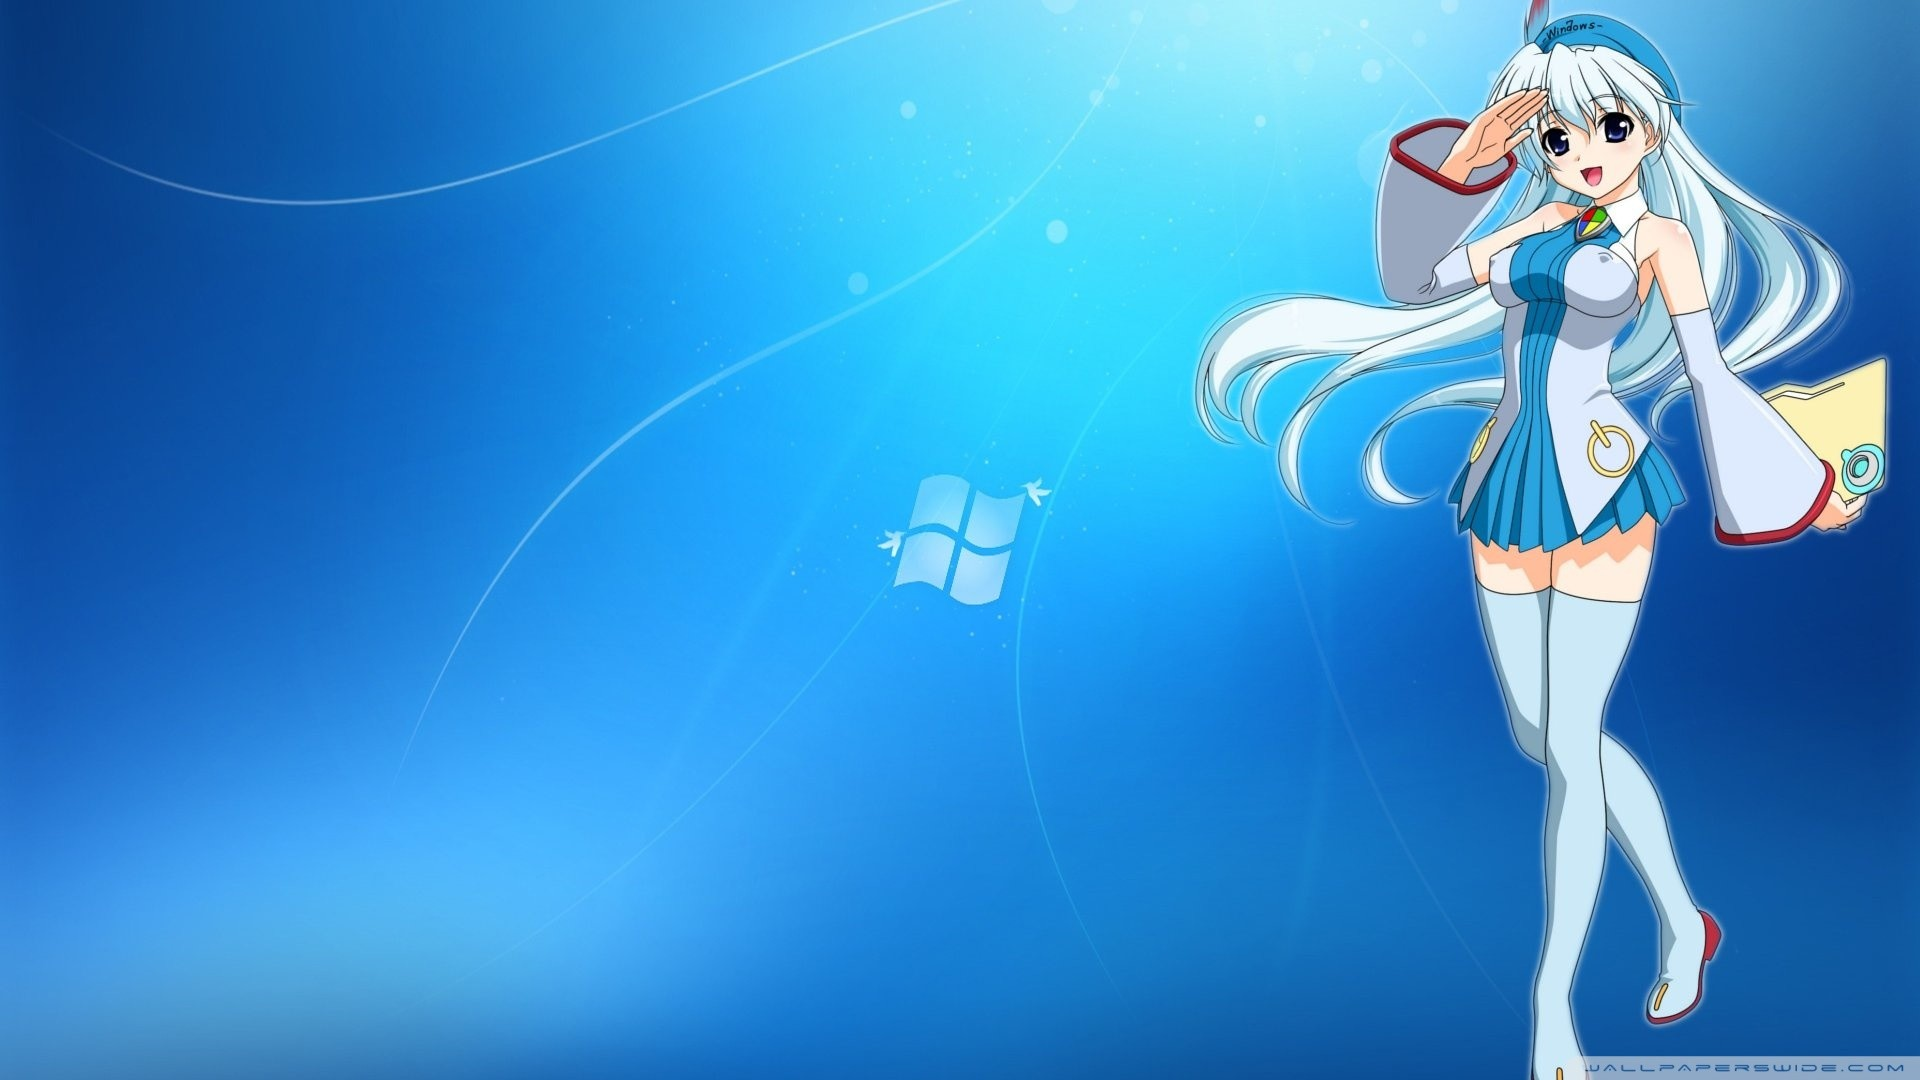 HD 1600x900 Anime Wallpaper (60+ Images